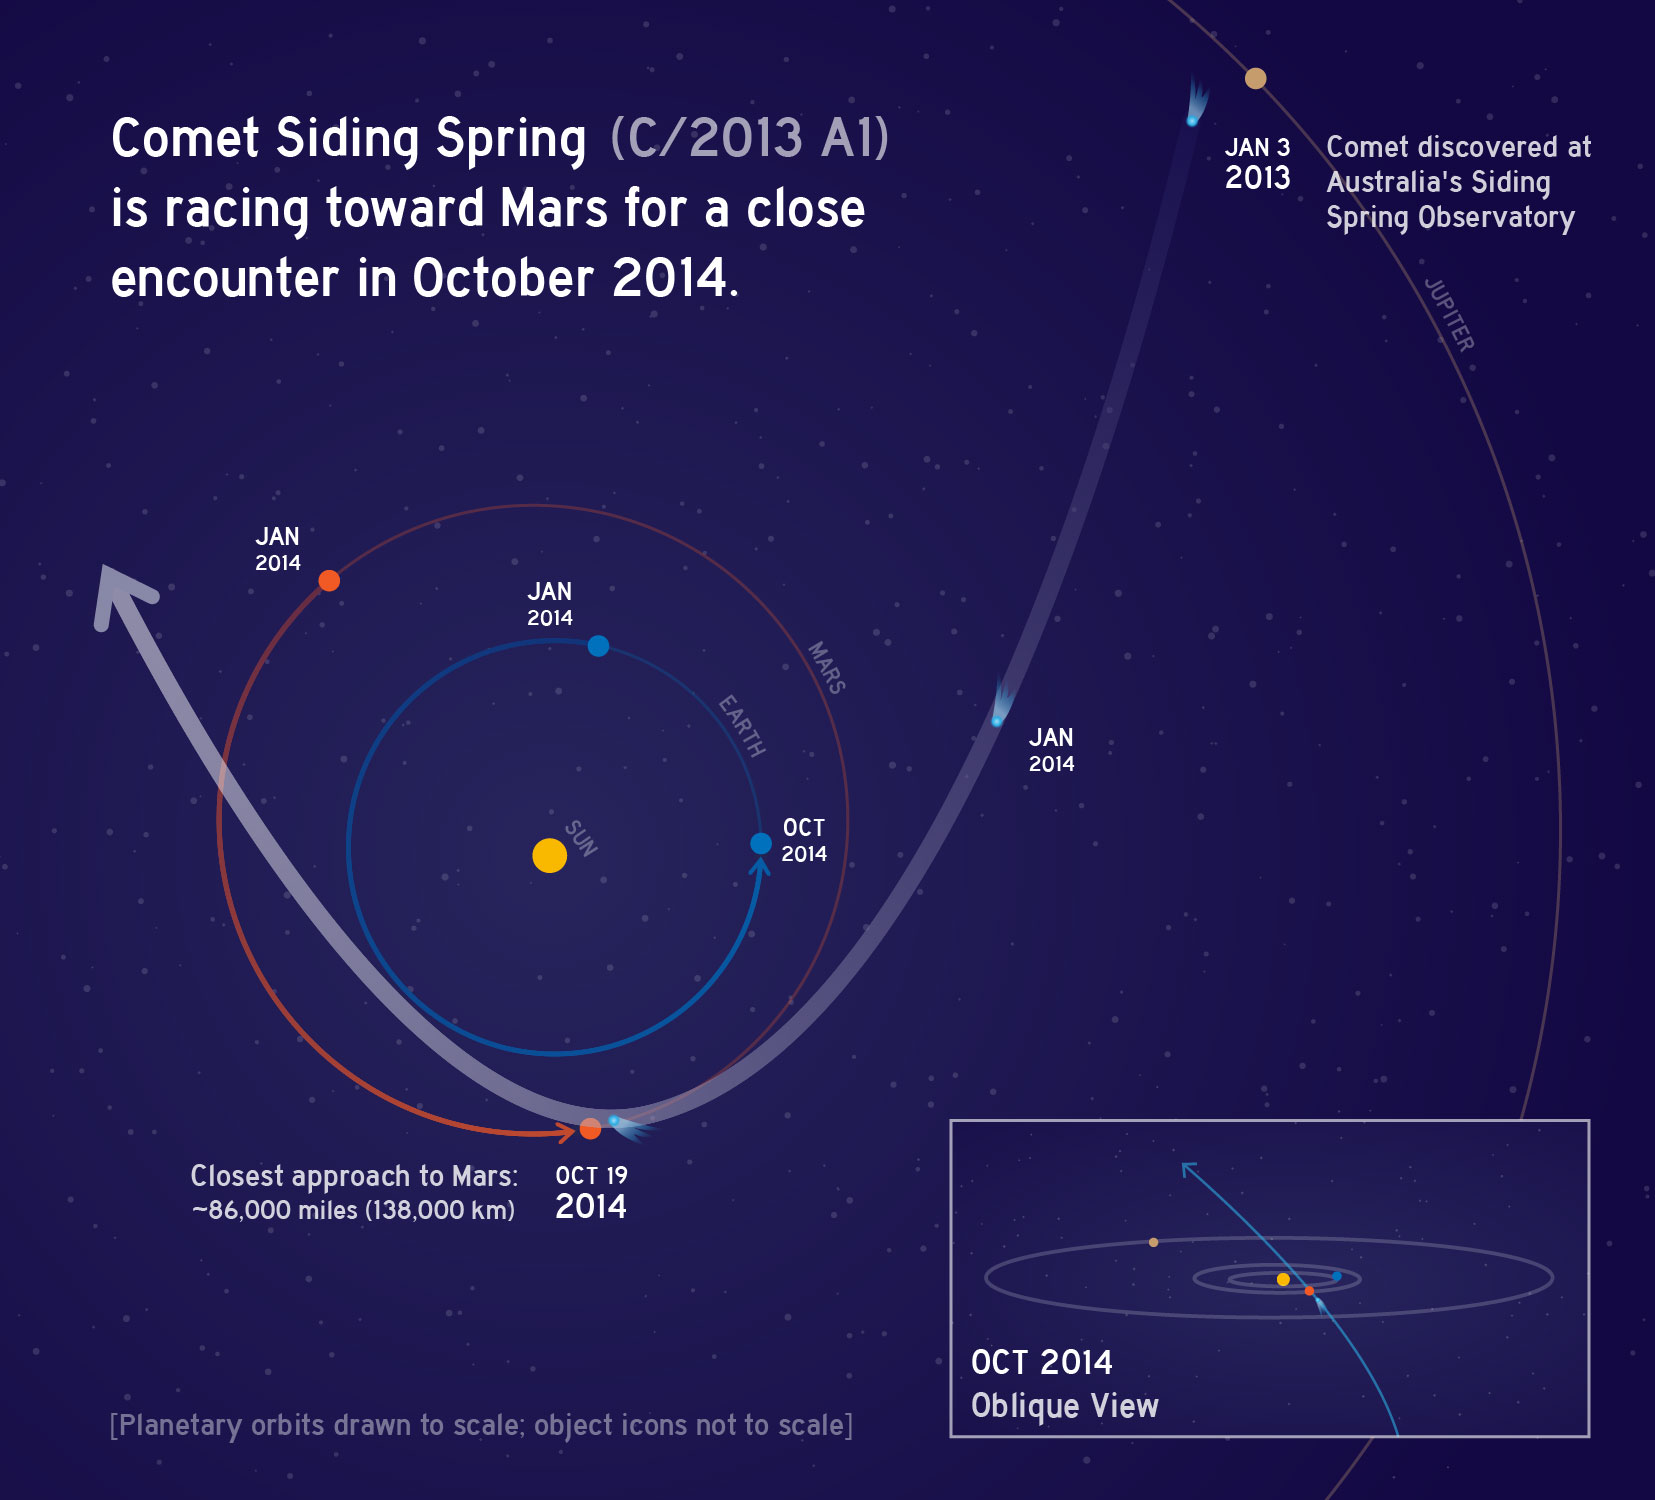 C/2013 A1 Siding Spring Orbit Graphic